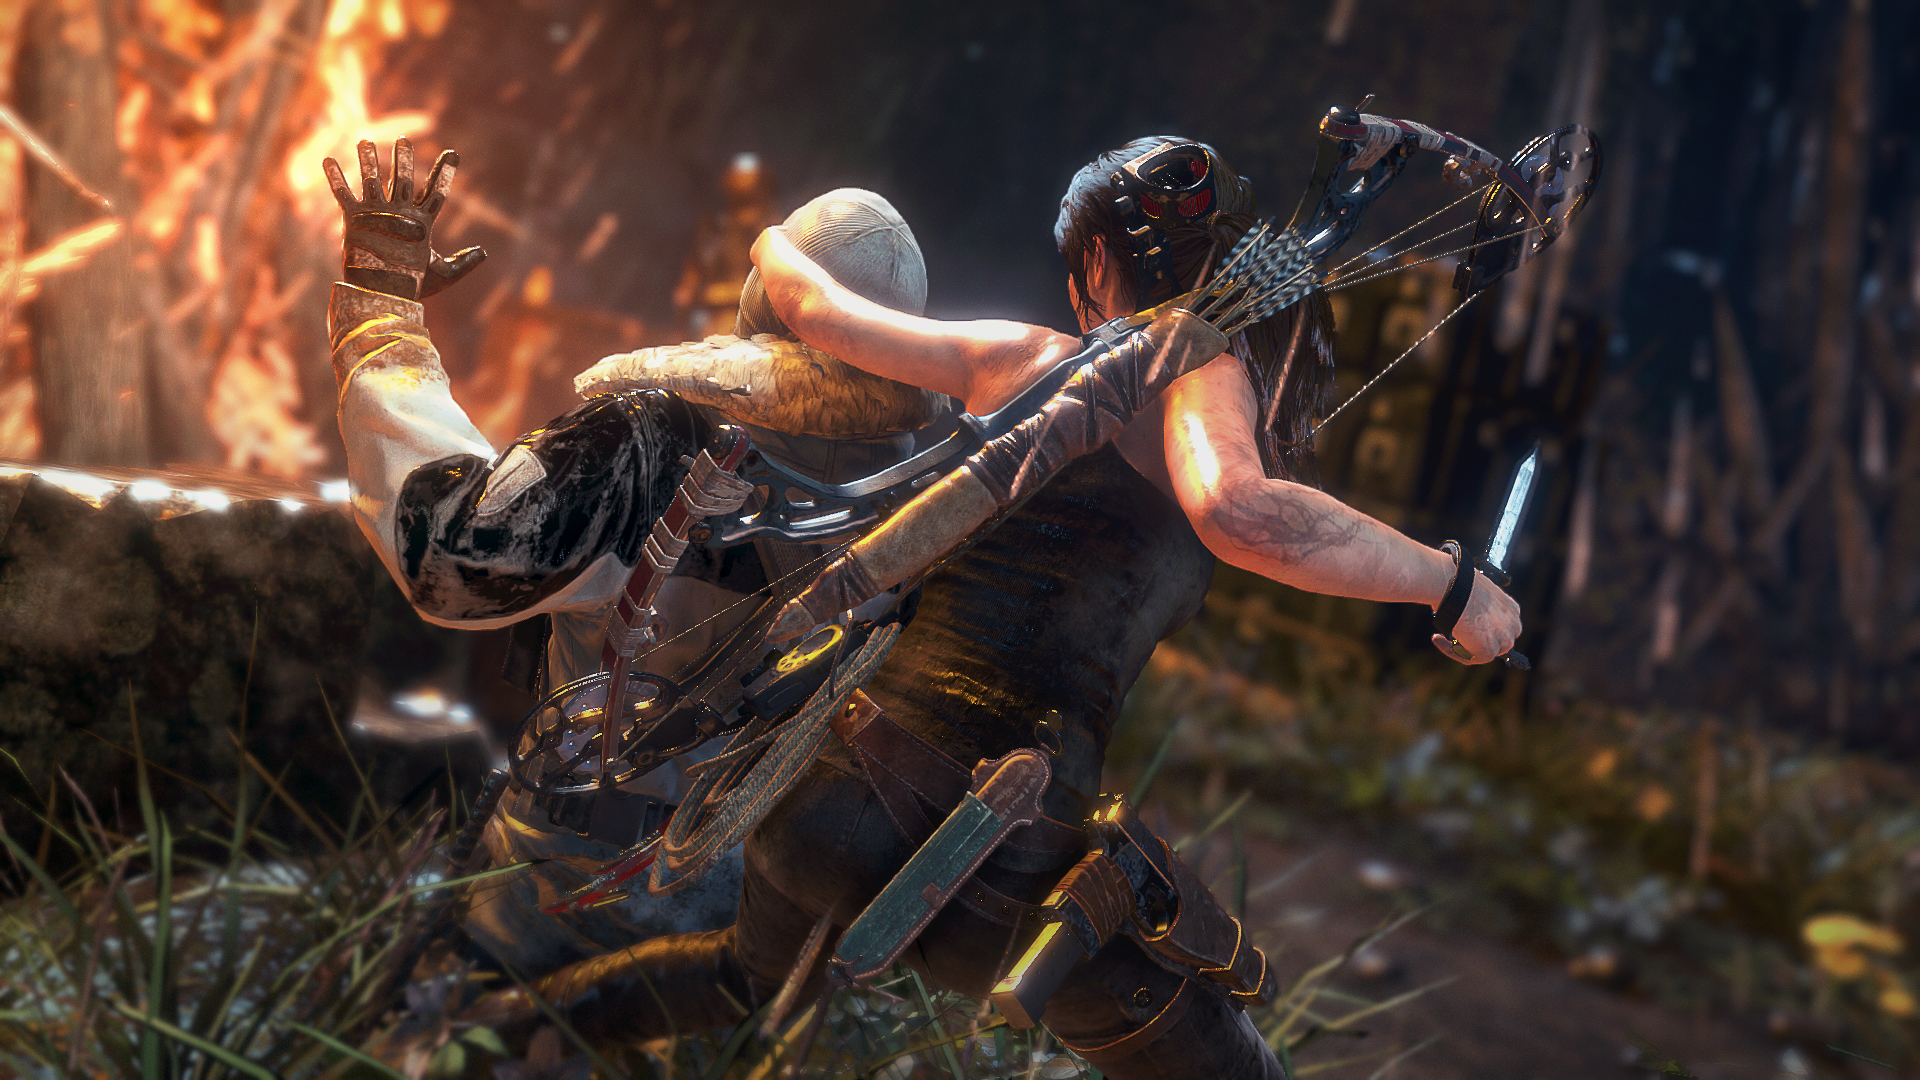 Rise Of The Tomb Raider Has Convinced Me To Buy An Xbox One Vg247